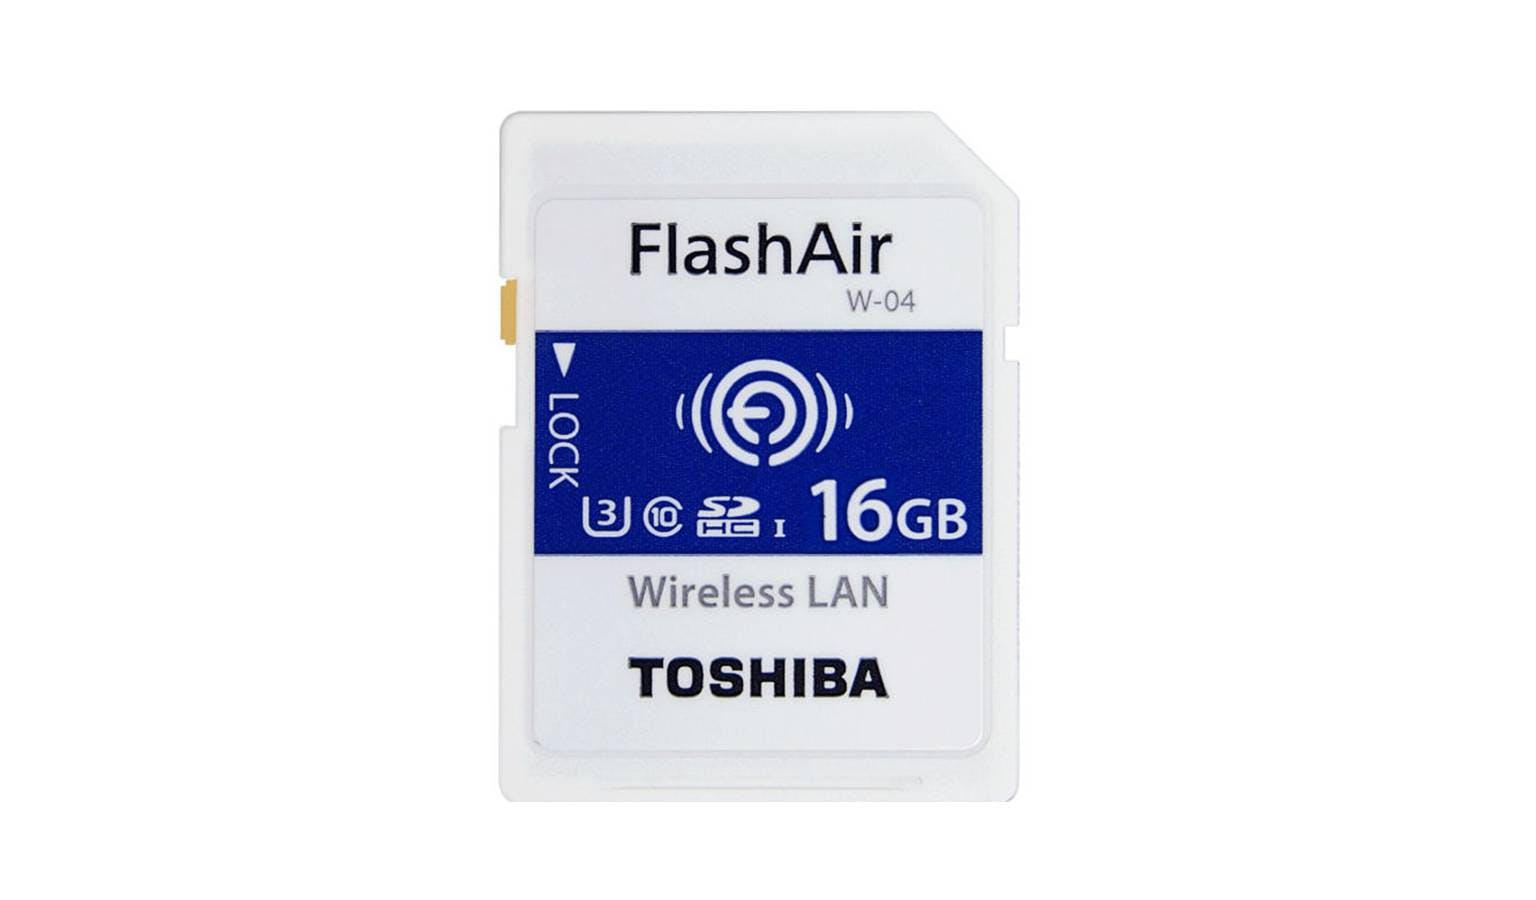 Toshiba FlashAir W-04 C10 SDHC 16 GB Memory Card - White